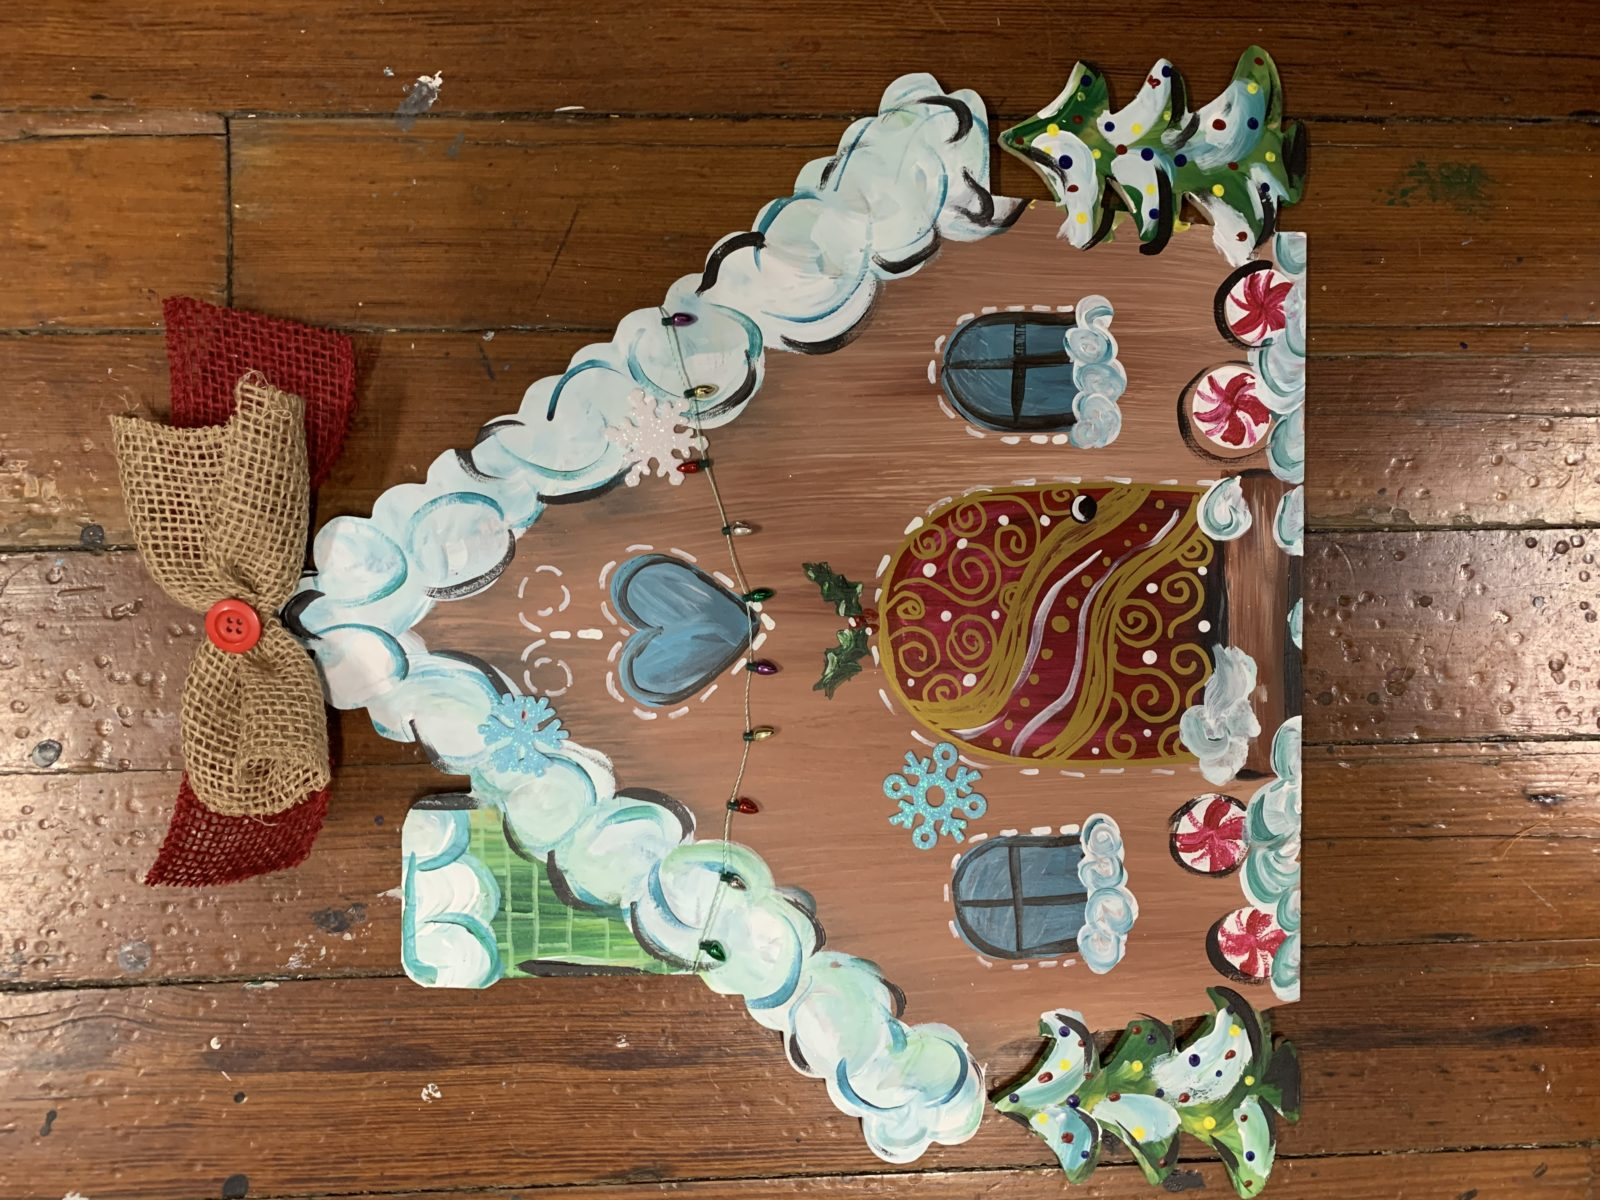 Buy your blank gingerbread house here to paint at home